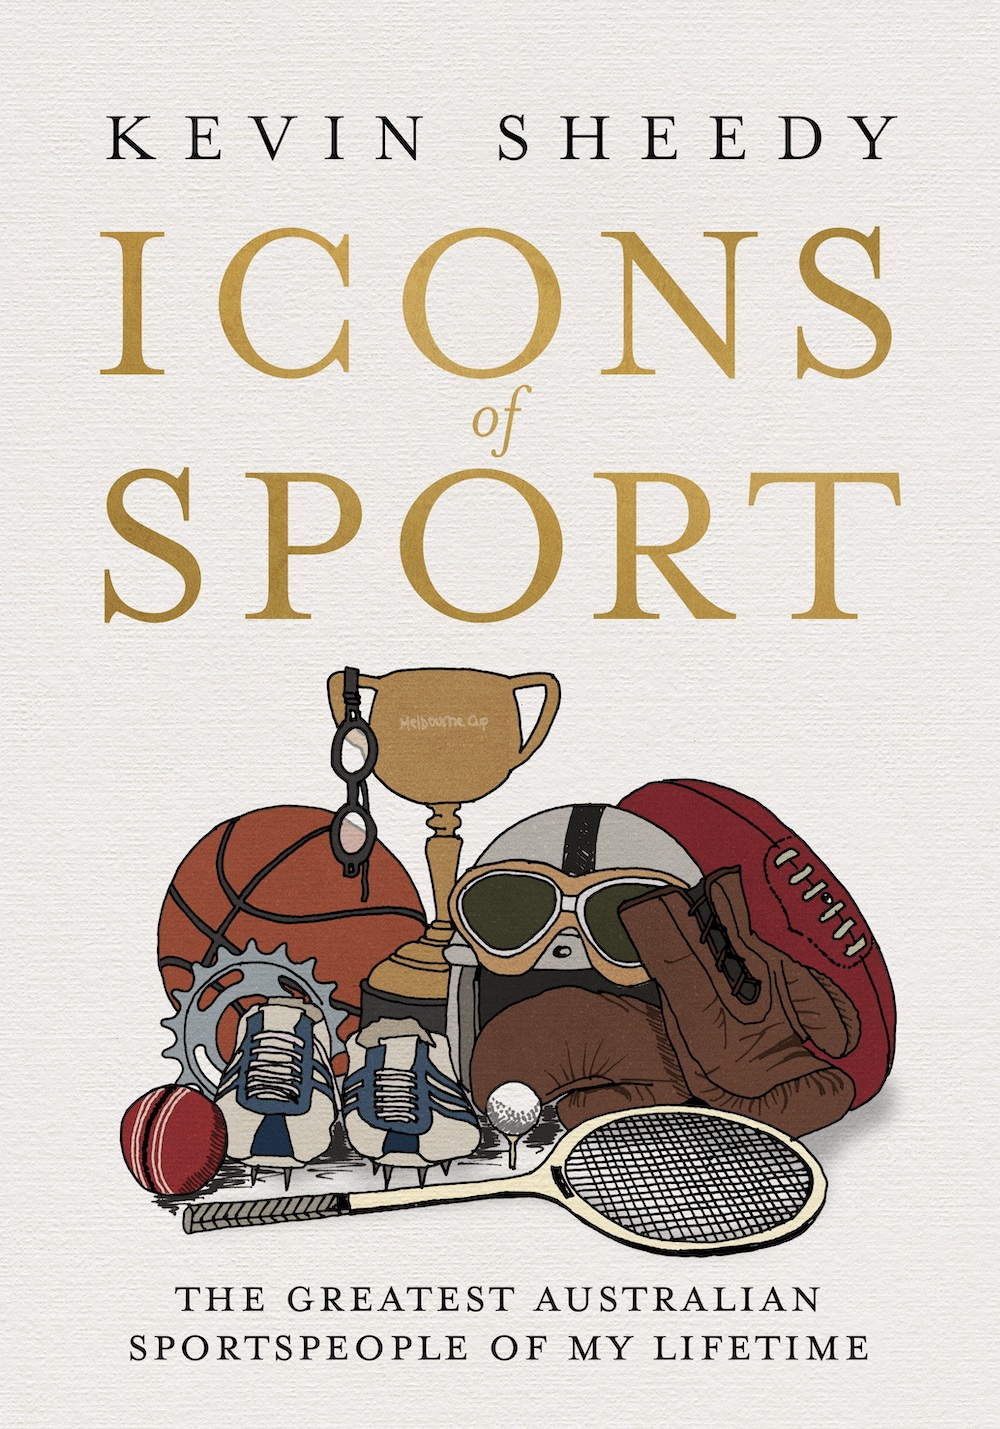 Icons of Sport by Kevin Sheedy